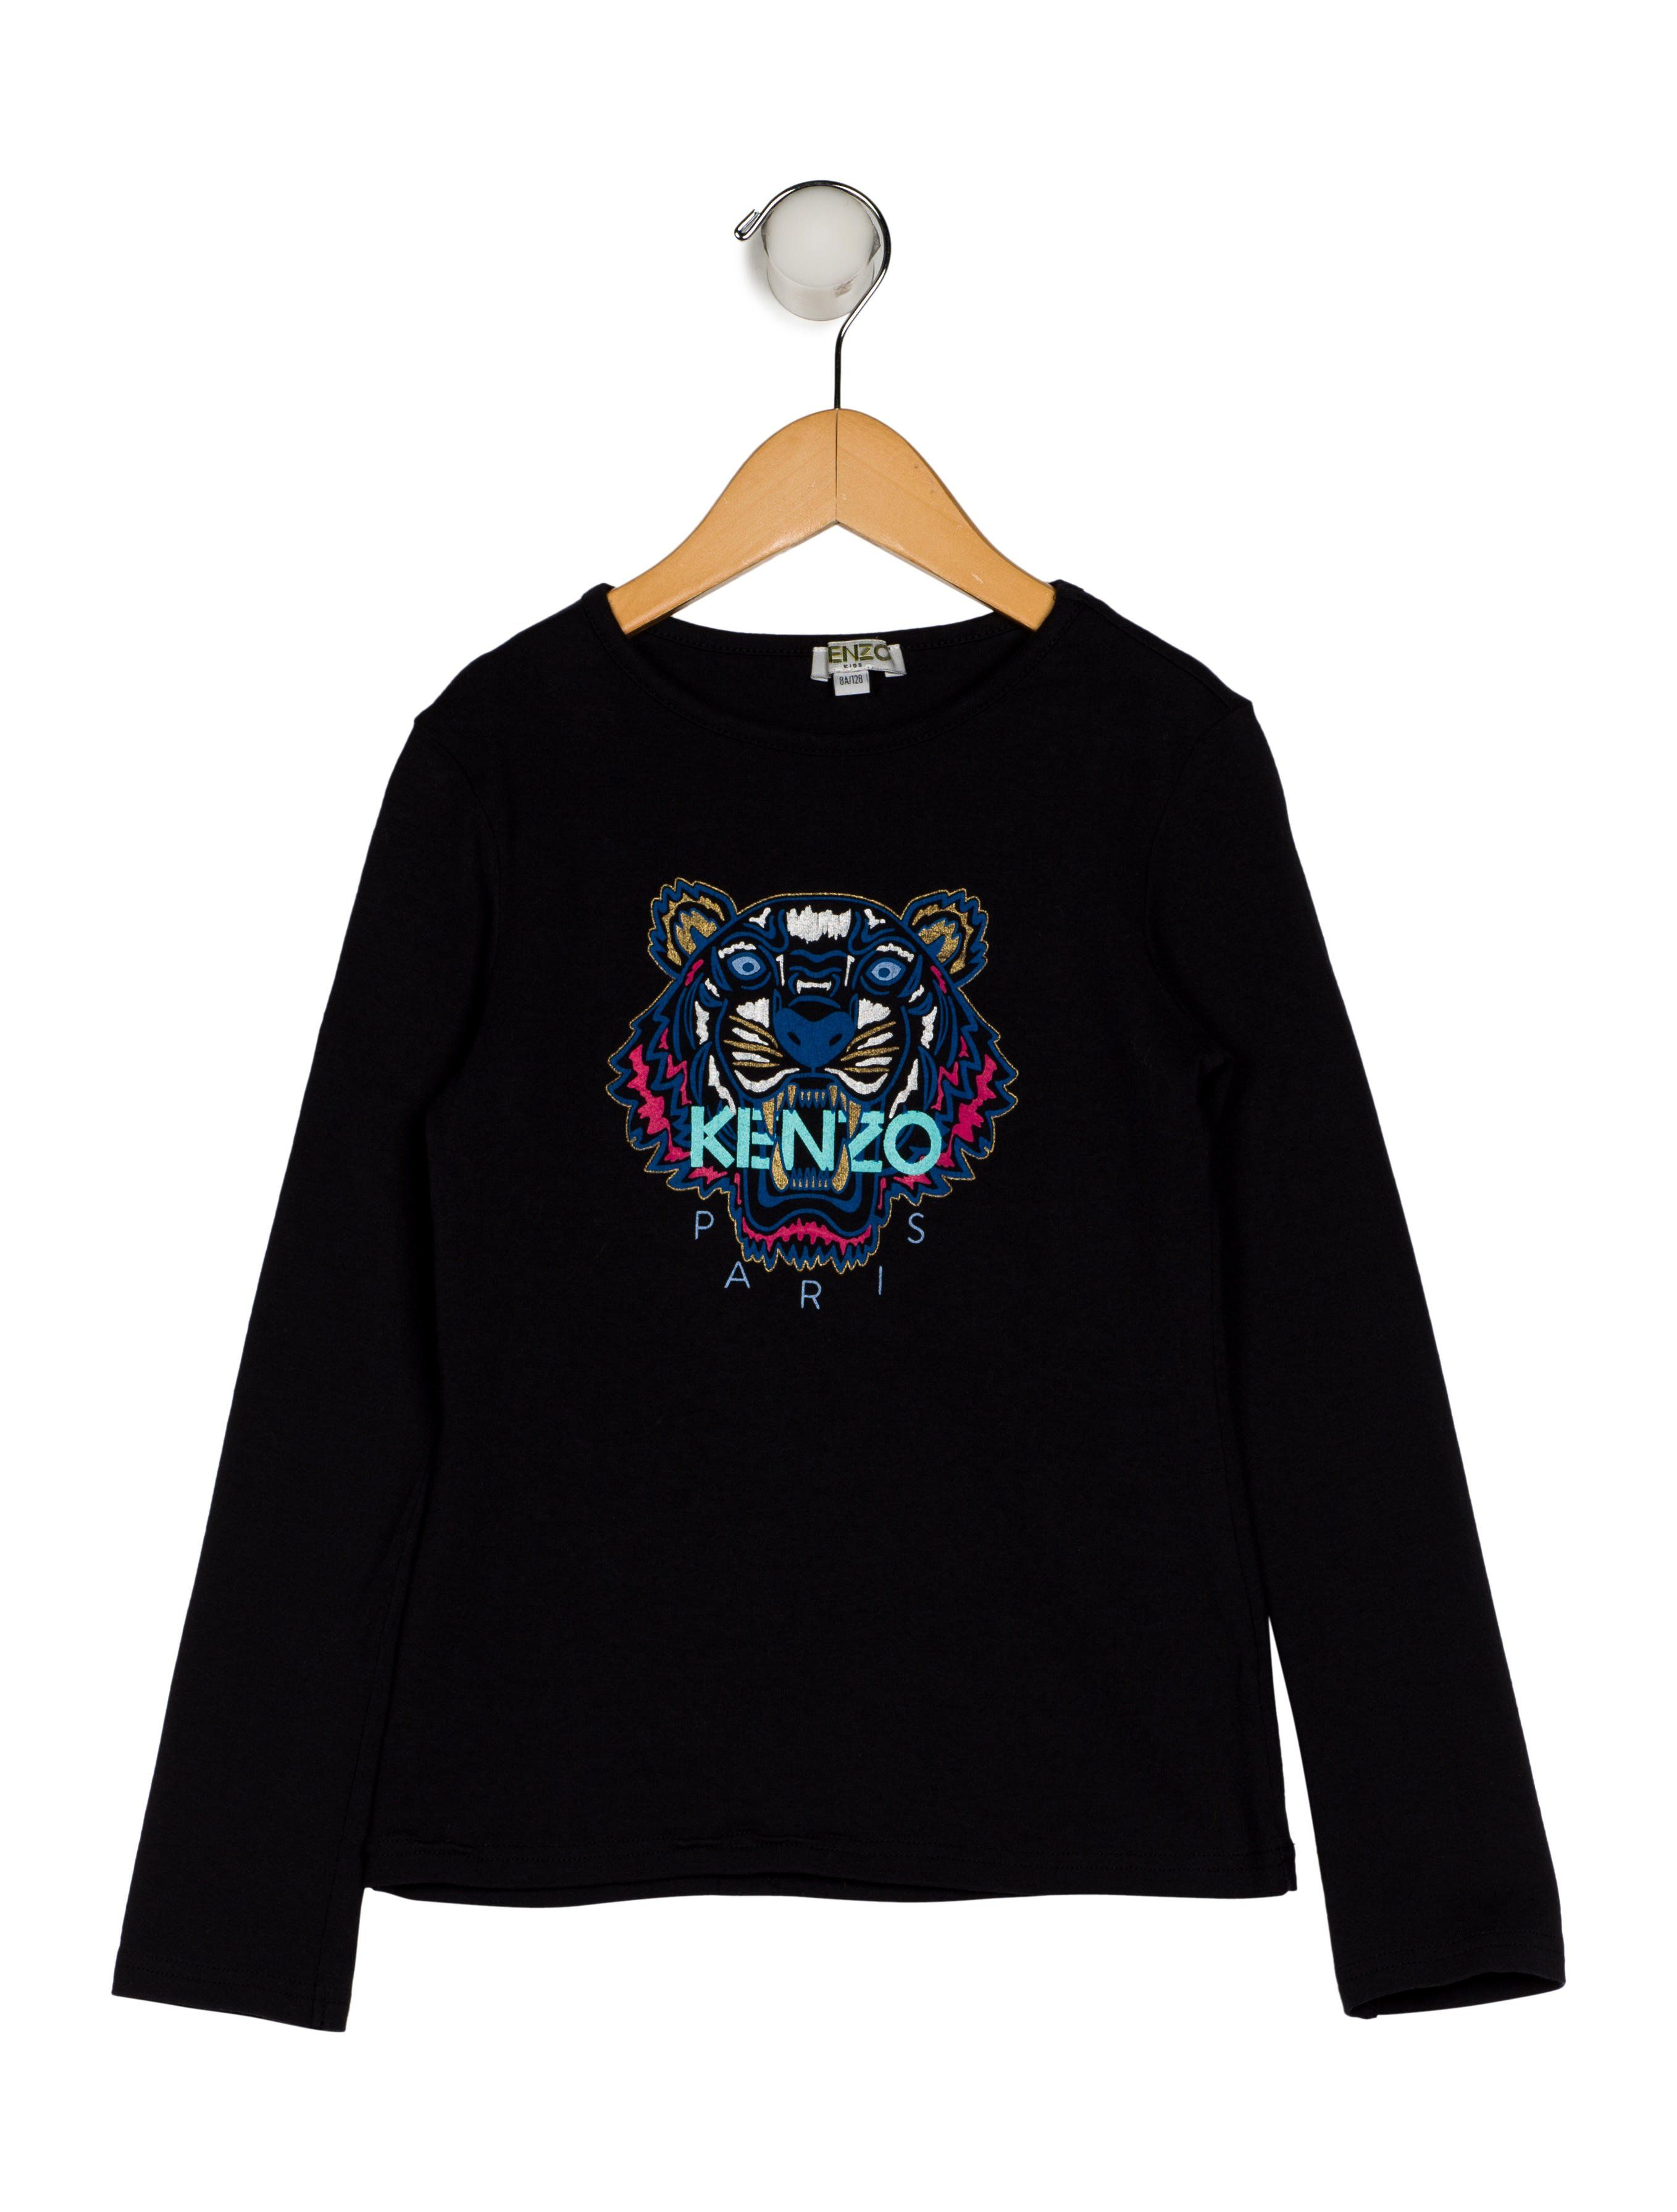 45a3587823a2 Girls' black and multicolor Kenzo Kids top with tiger print at front, crew  neck and long sleeves. Machine washable. Unfortunately, due to  restrictions, th